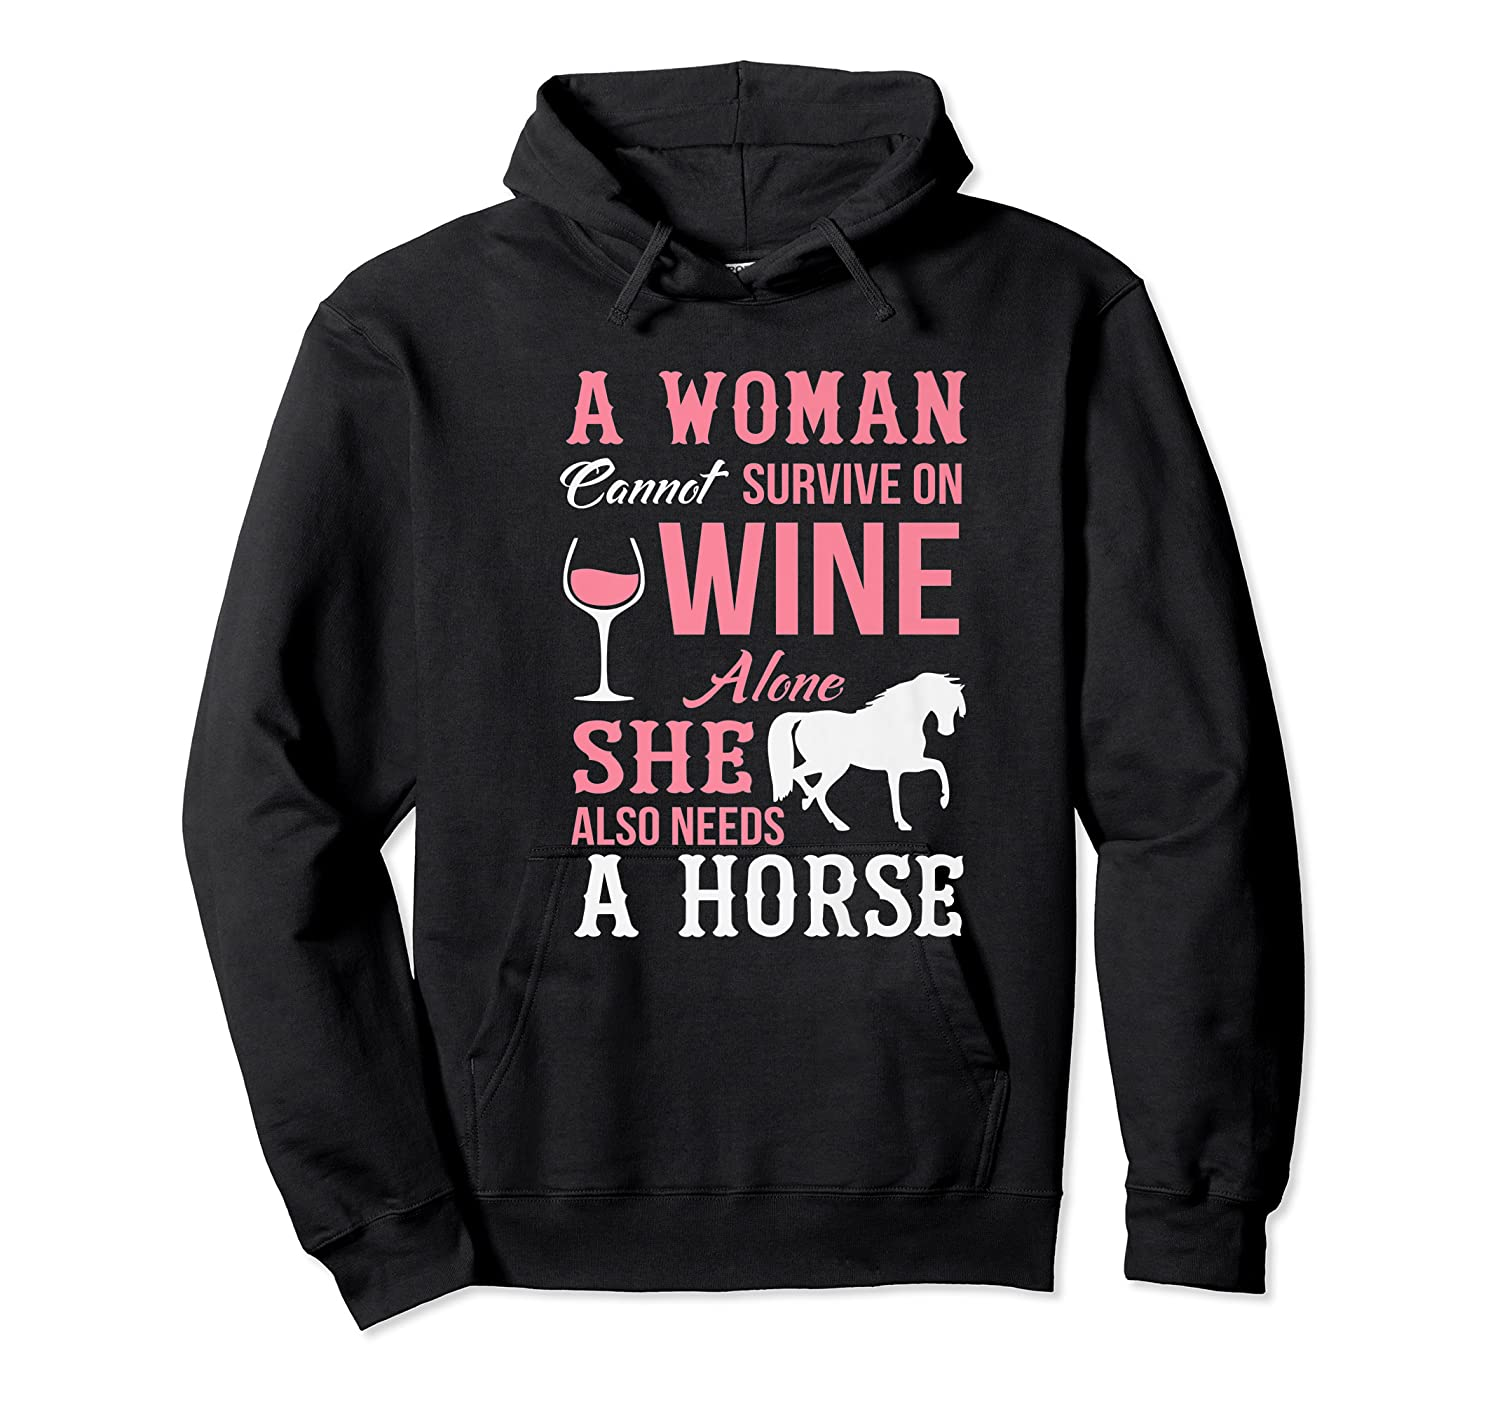 A Woman Can't Survive On Wine Alone She Also Needs A Horse Premium T-shirt Unisex Pullover Hoodie